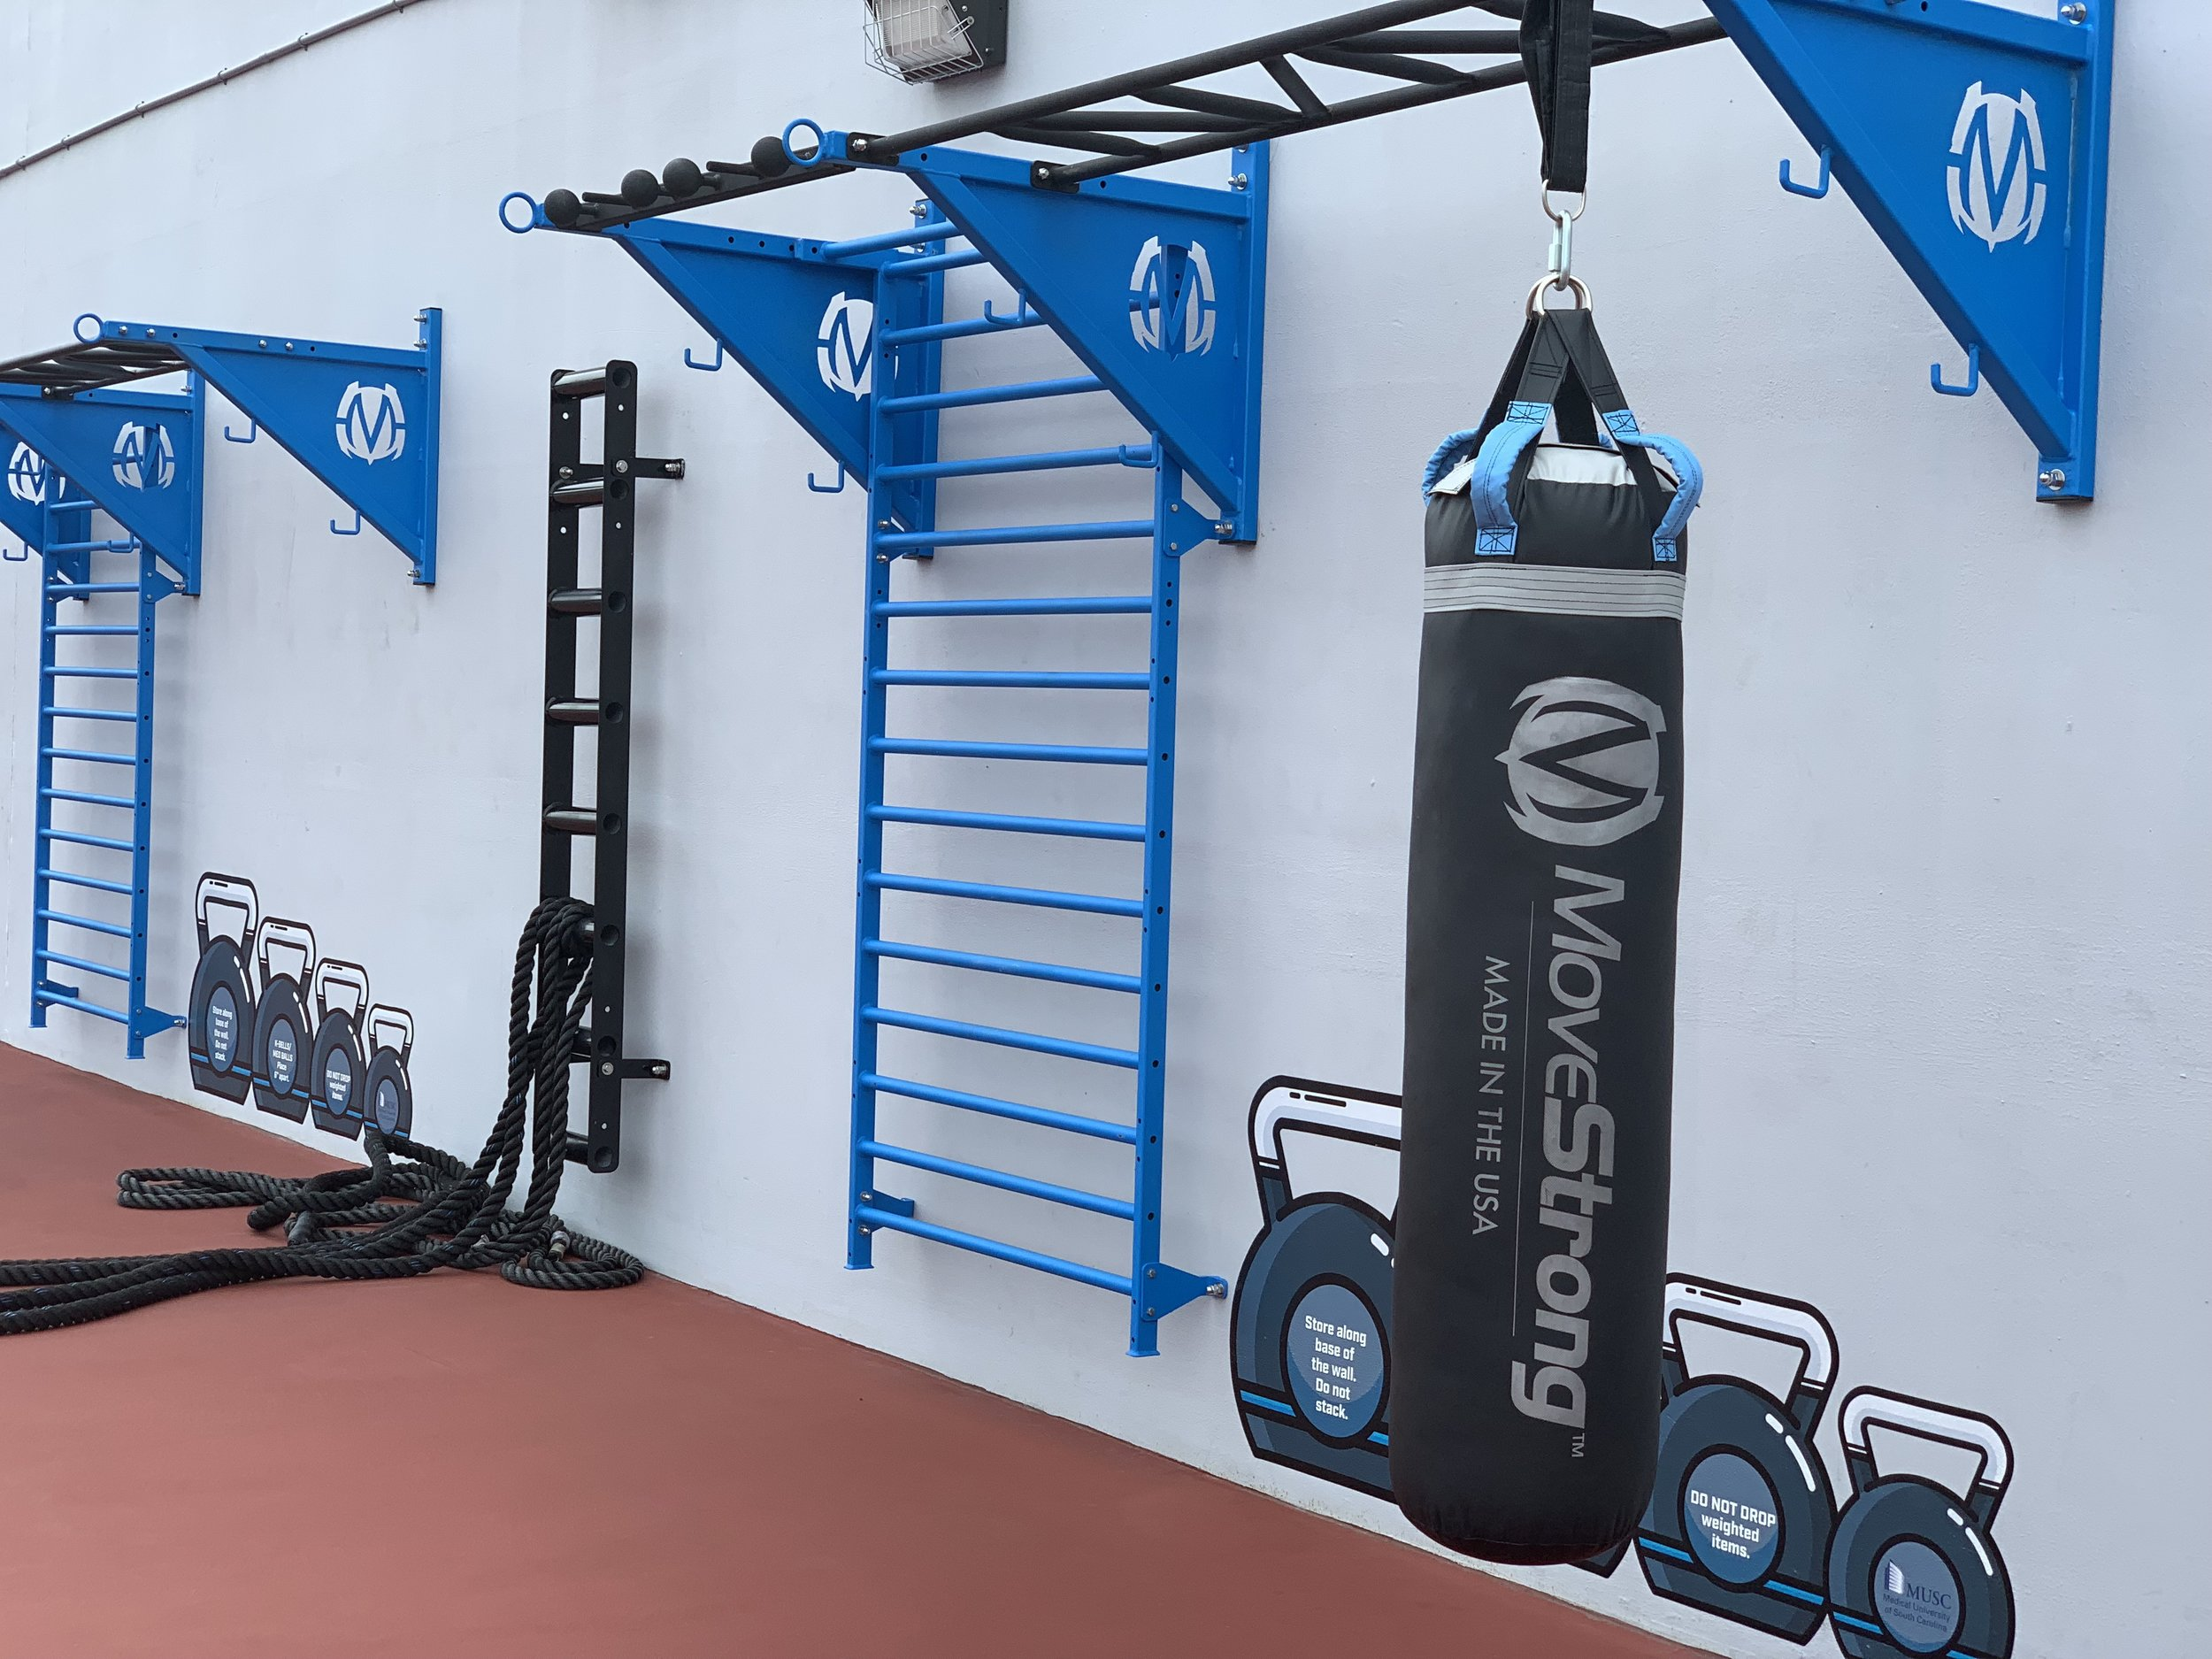 Customized for Outdoor Fitness